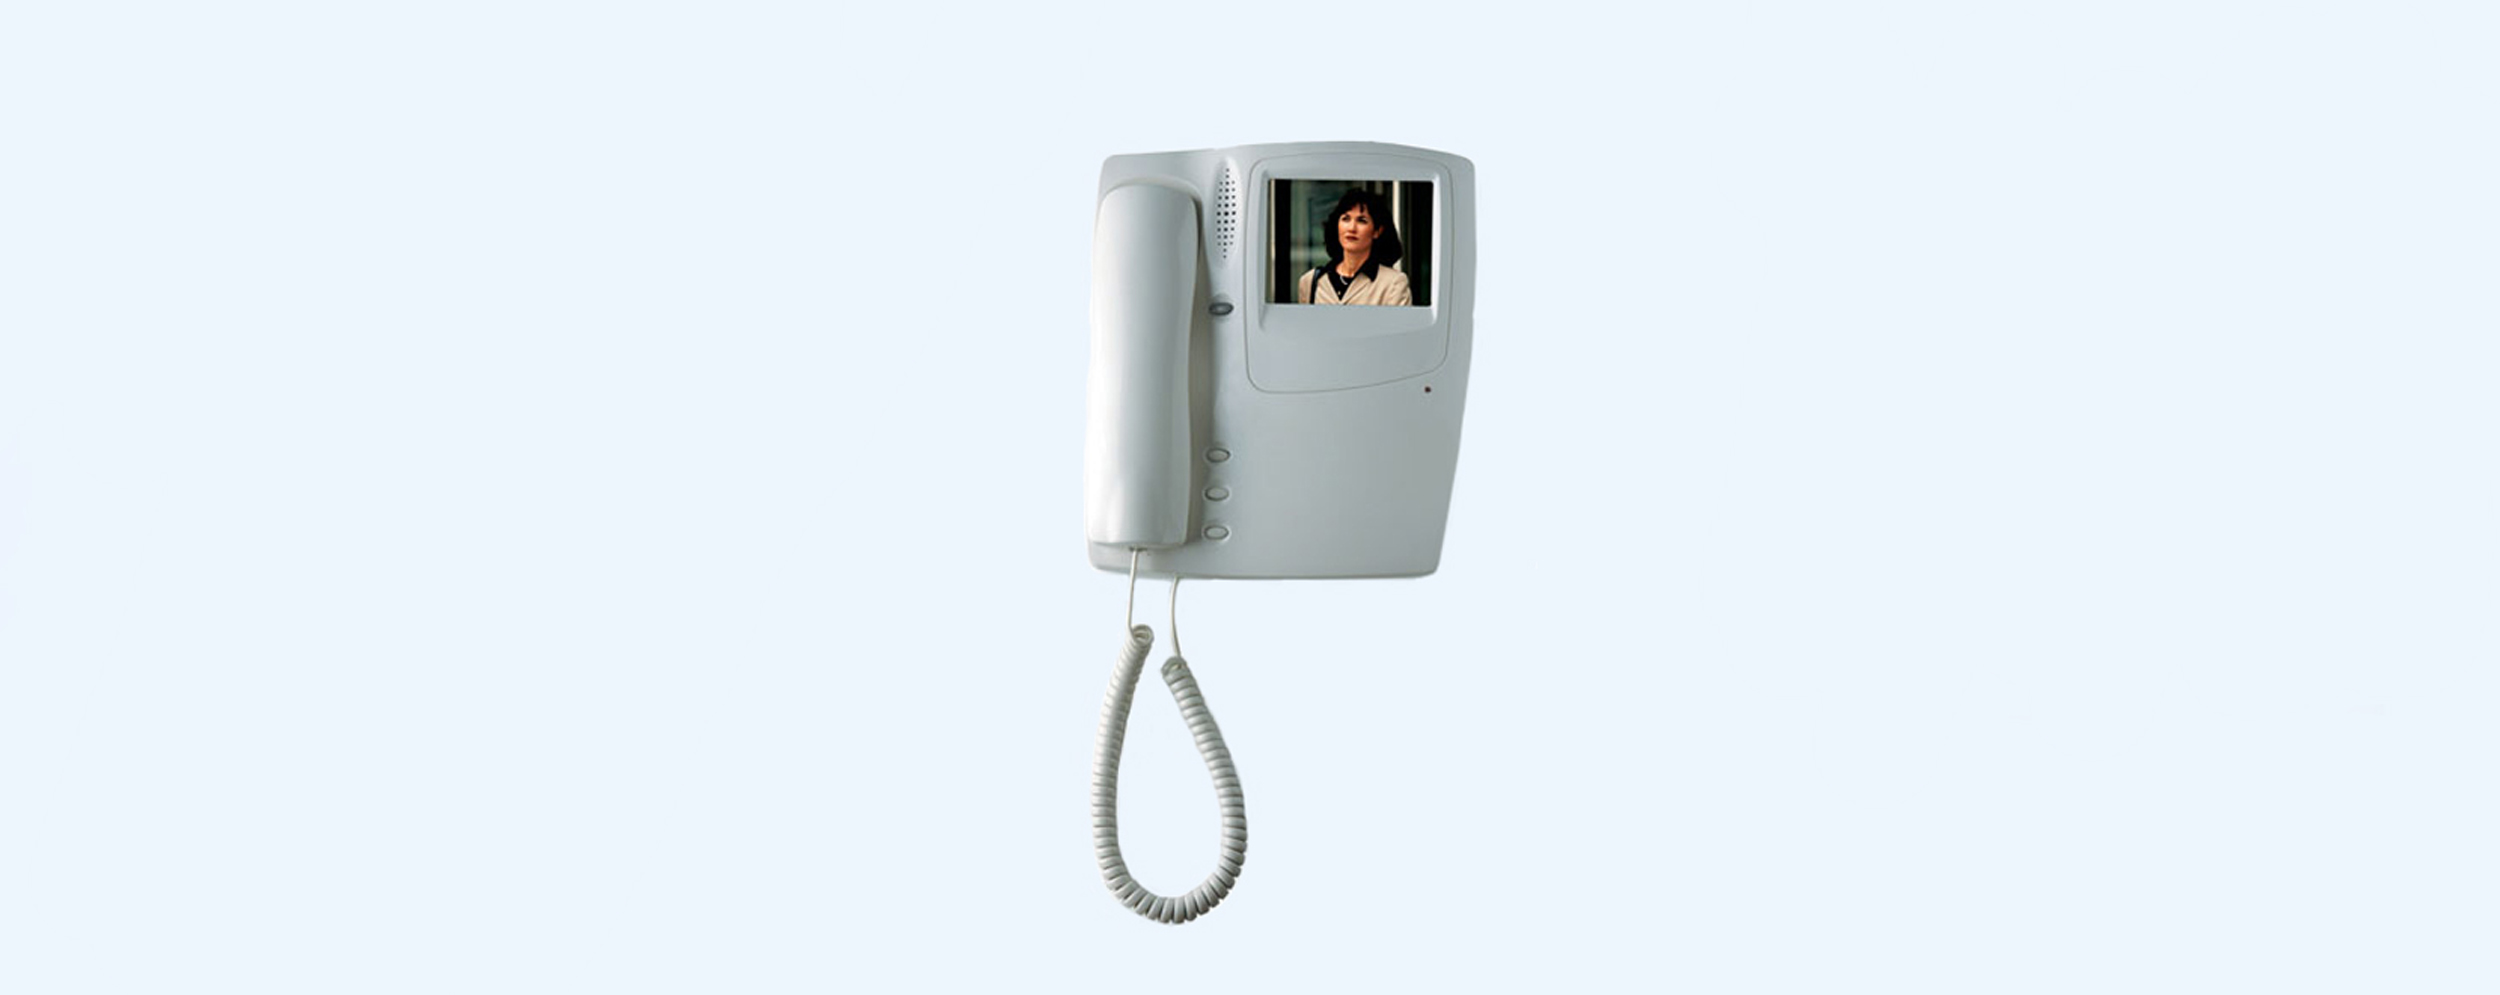 Door Entry Systems Alcad Home Security System Wiring Diagram Furthermore Free Also In The Case Of A Video Installation Color Indoor Unit Model Mvc 002 With Coaxial Cable Connection Is Available